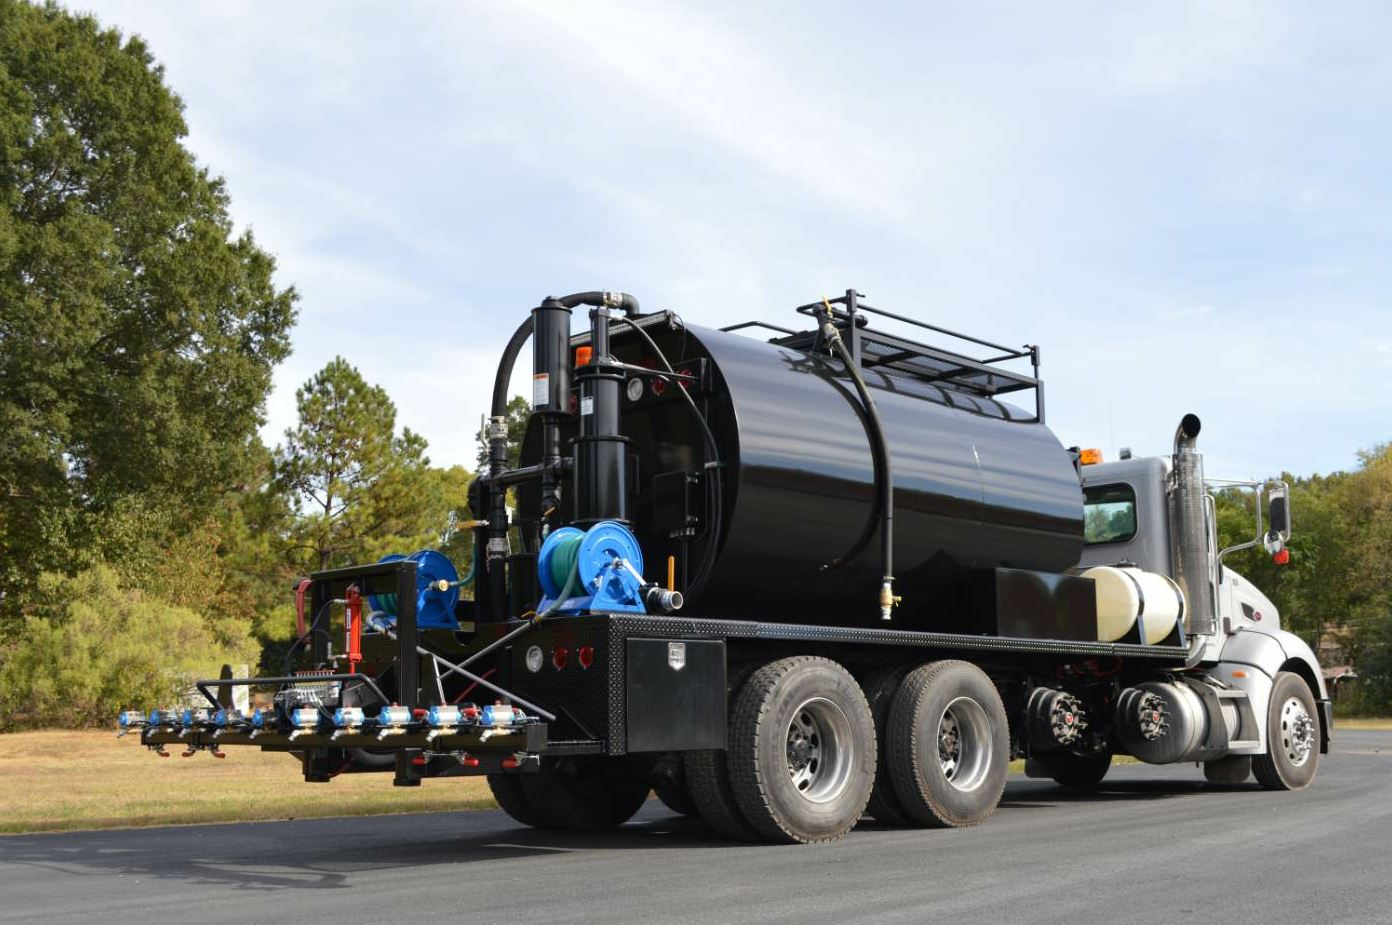 The DA 350 from Neal Manufacturing is a drivable machine that makes up half of the manufacturer's new Asphalt Road Preservation Package.